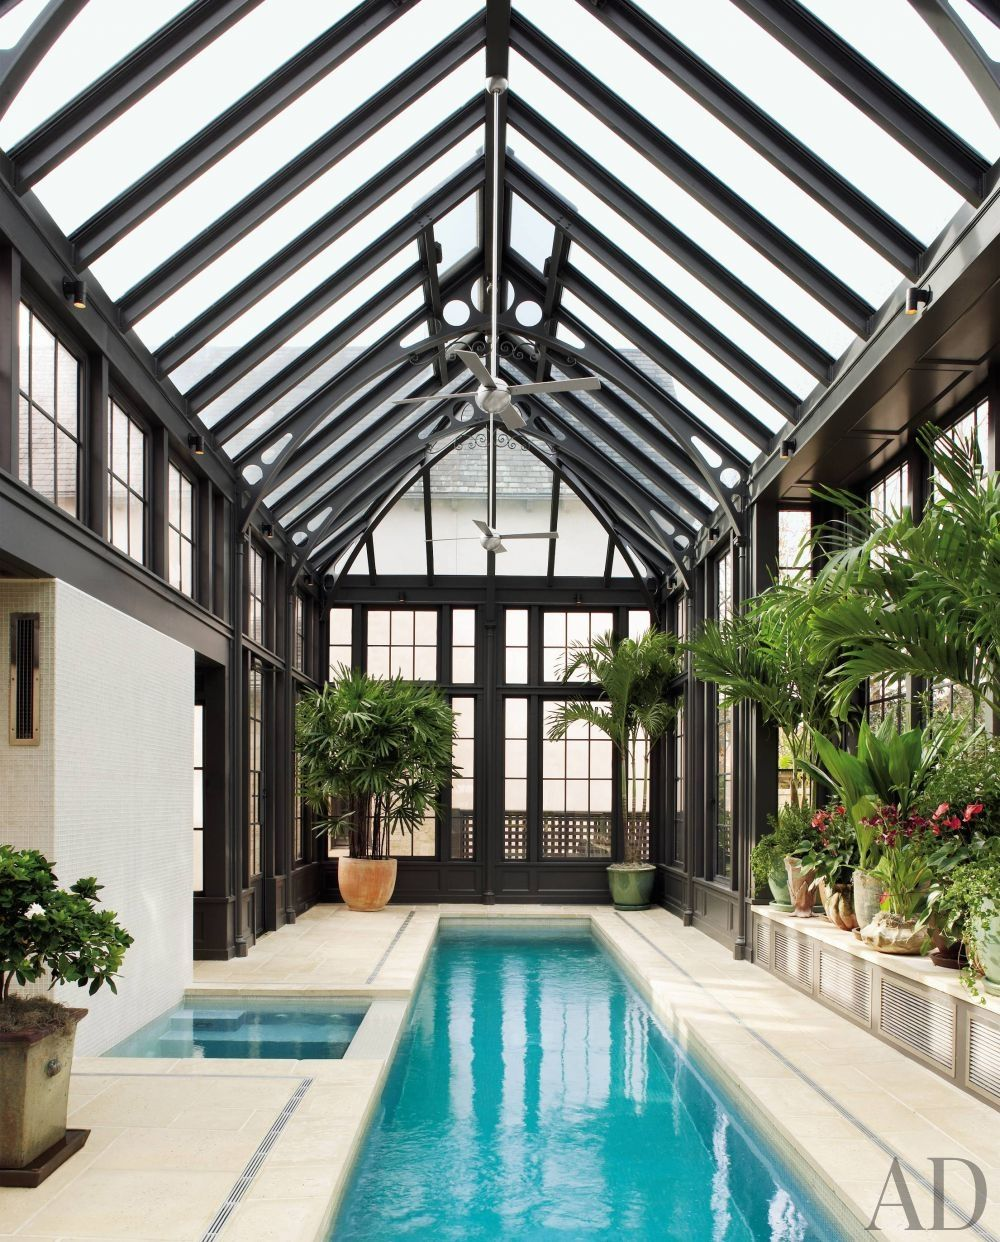 Poolhouses Via Archdigest Designfile Small Indoor Pool Indoor Swimming Pool Design Indoor Pool Design